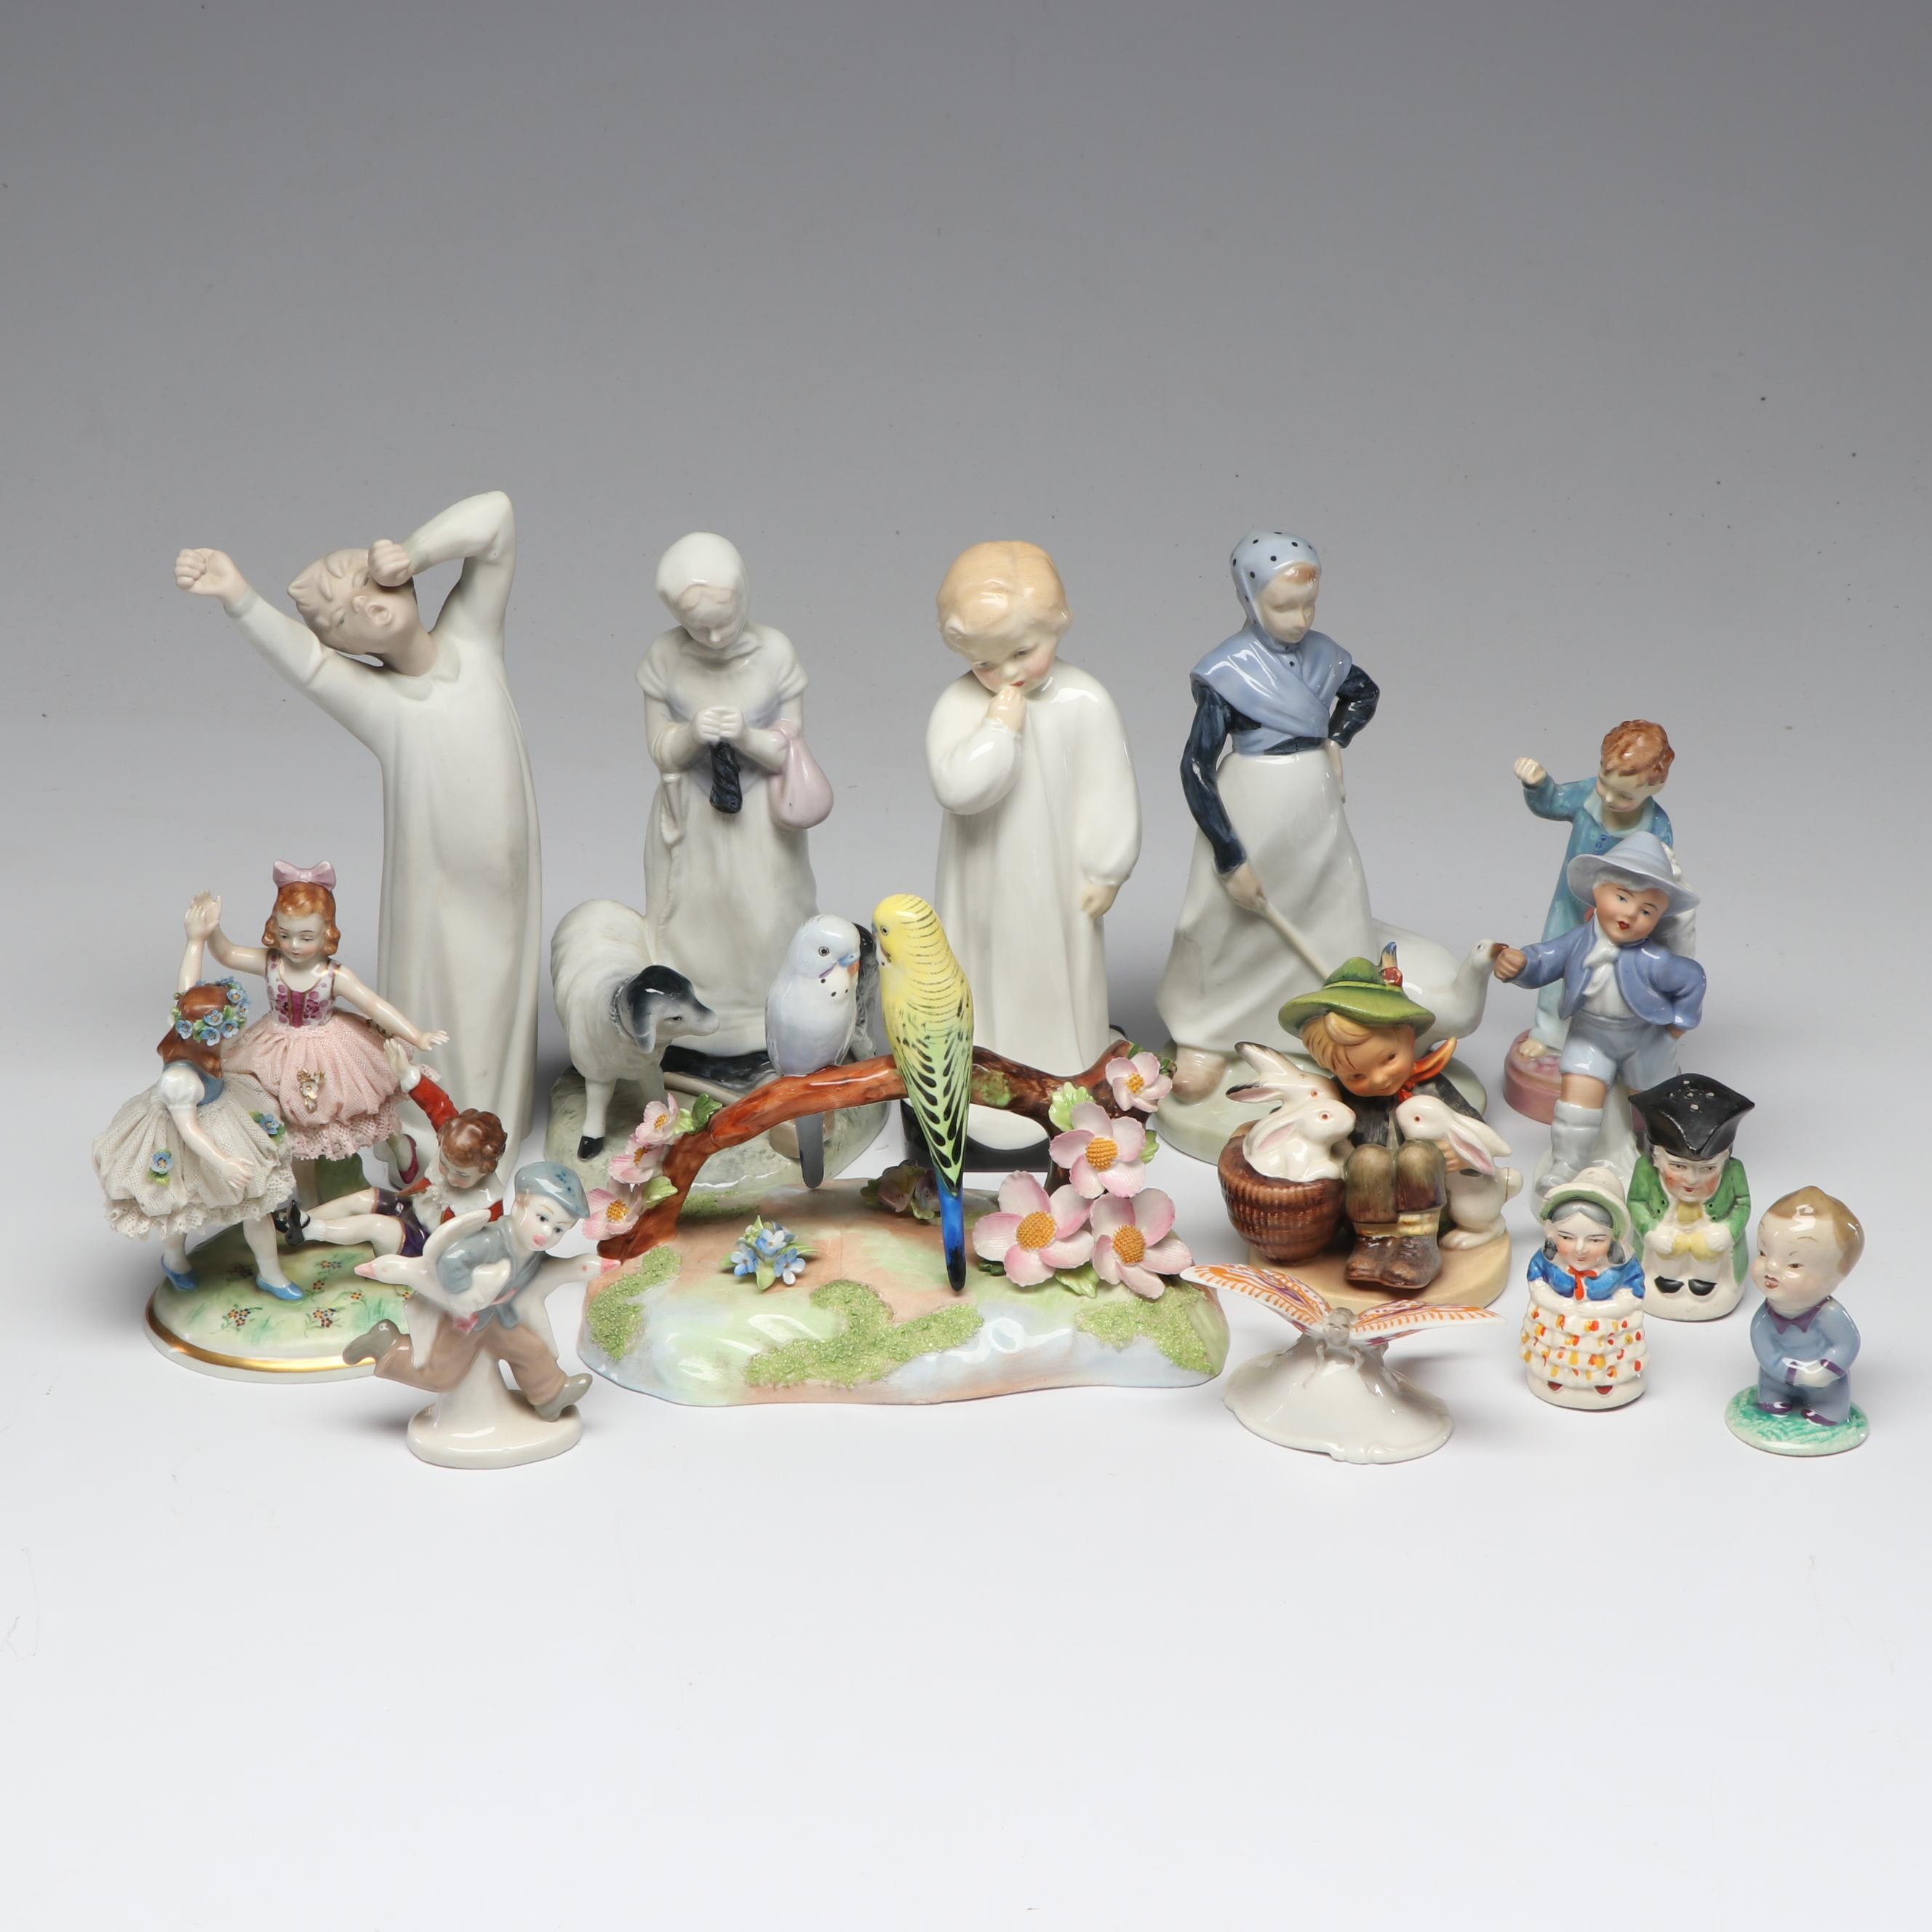 Porcelain Figurines with Hummel, Royal Doulton, Nao and Others